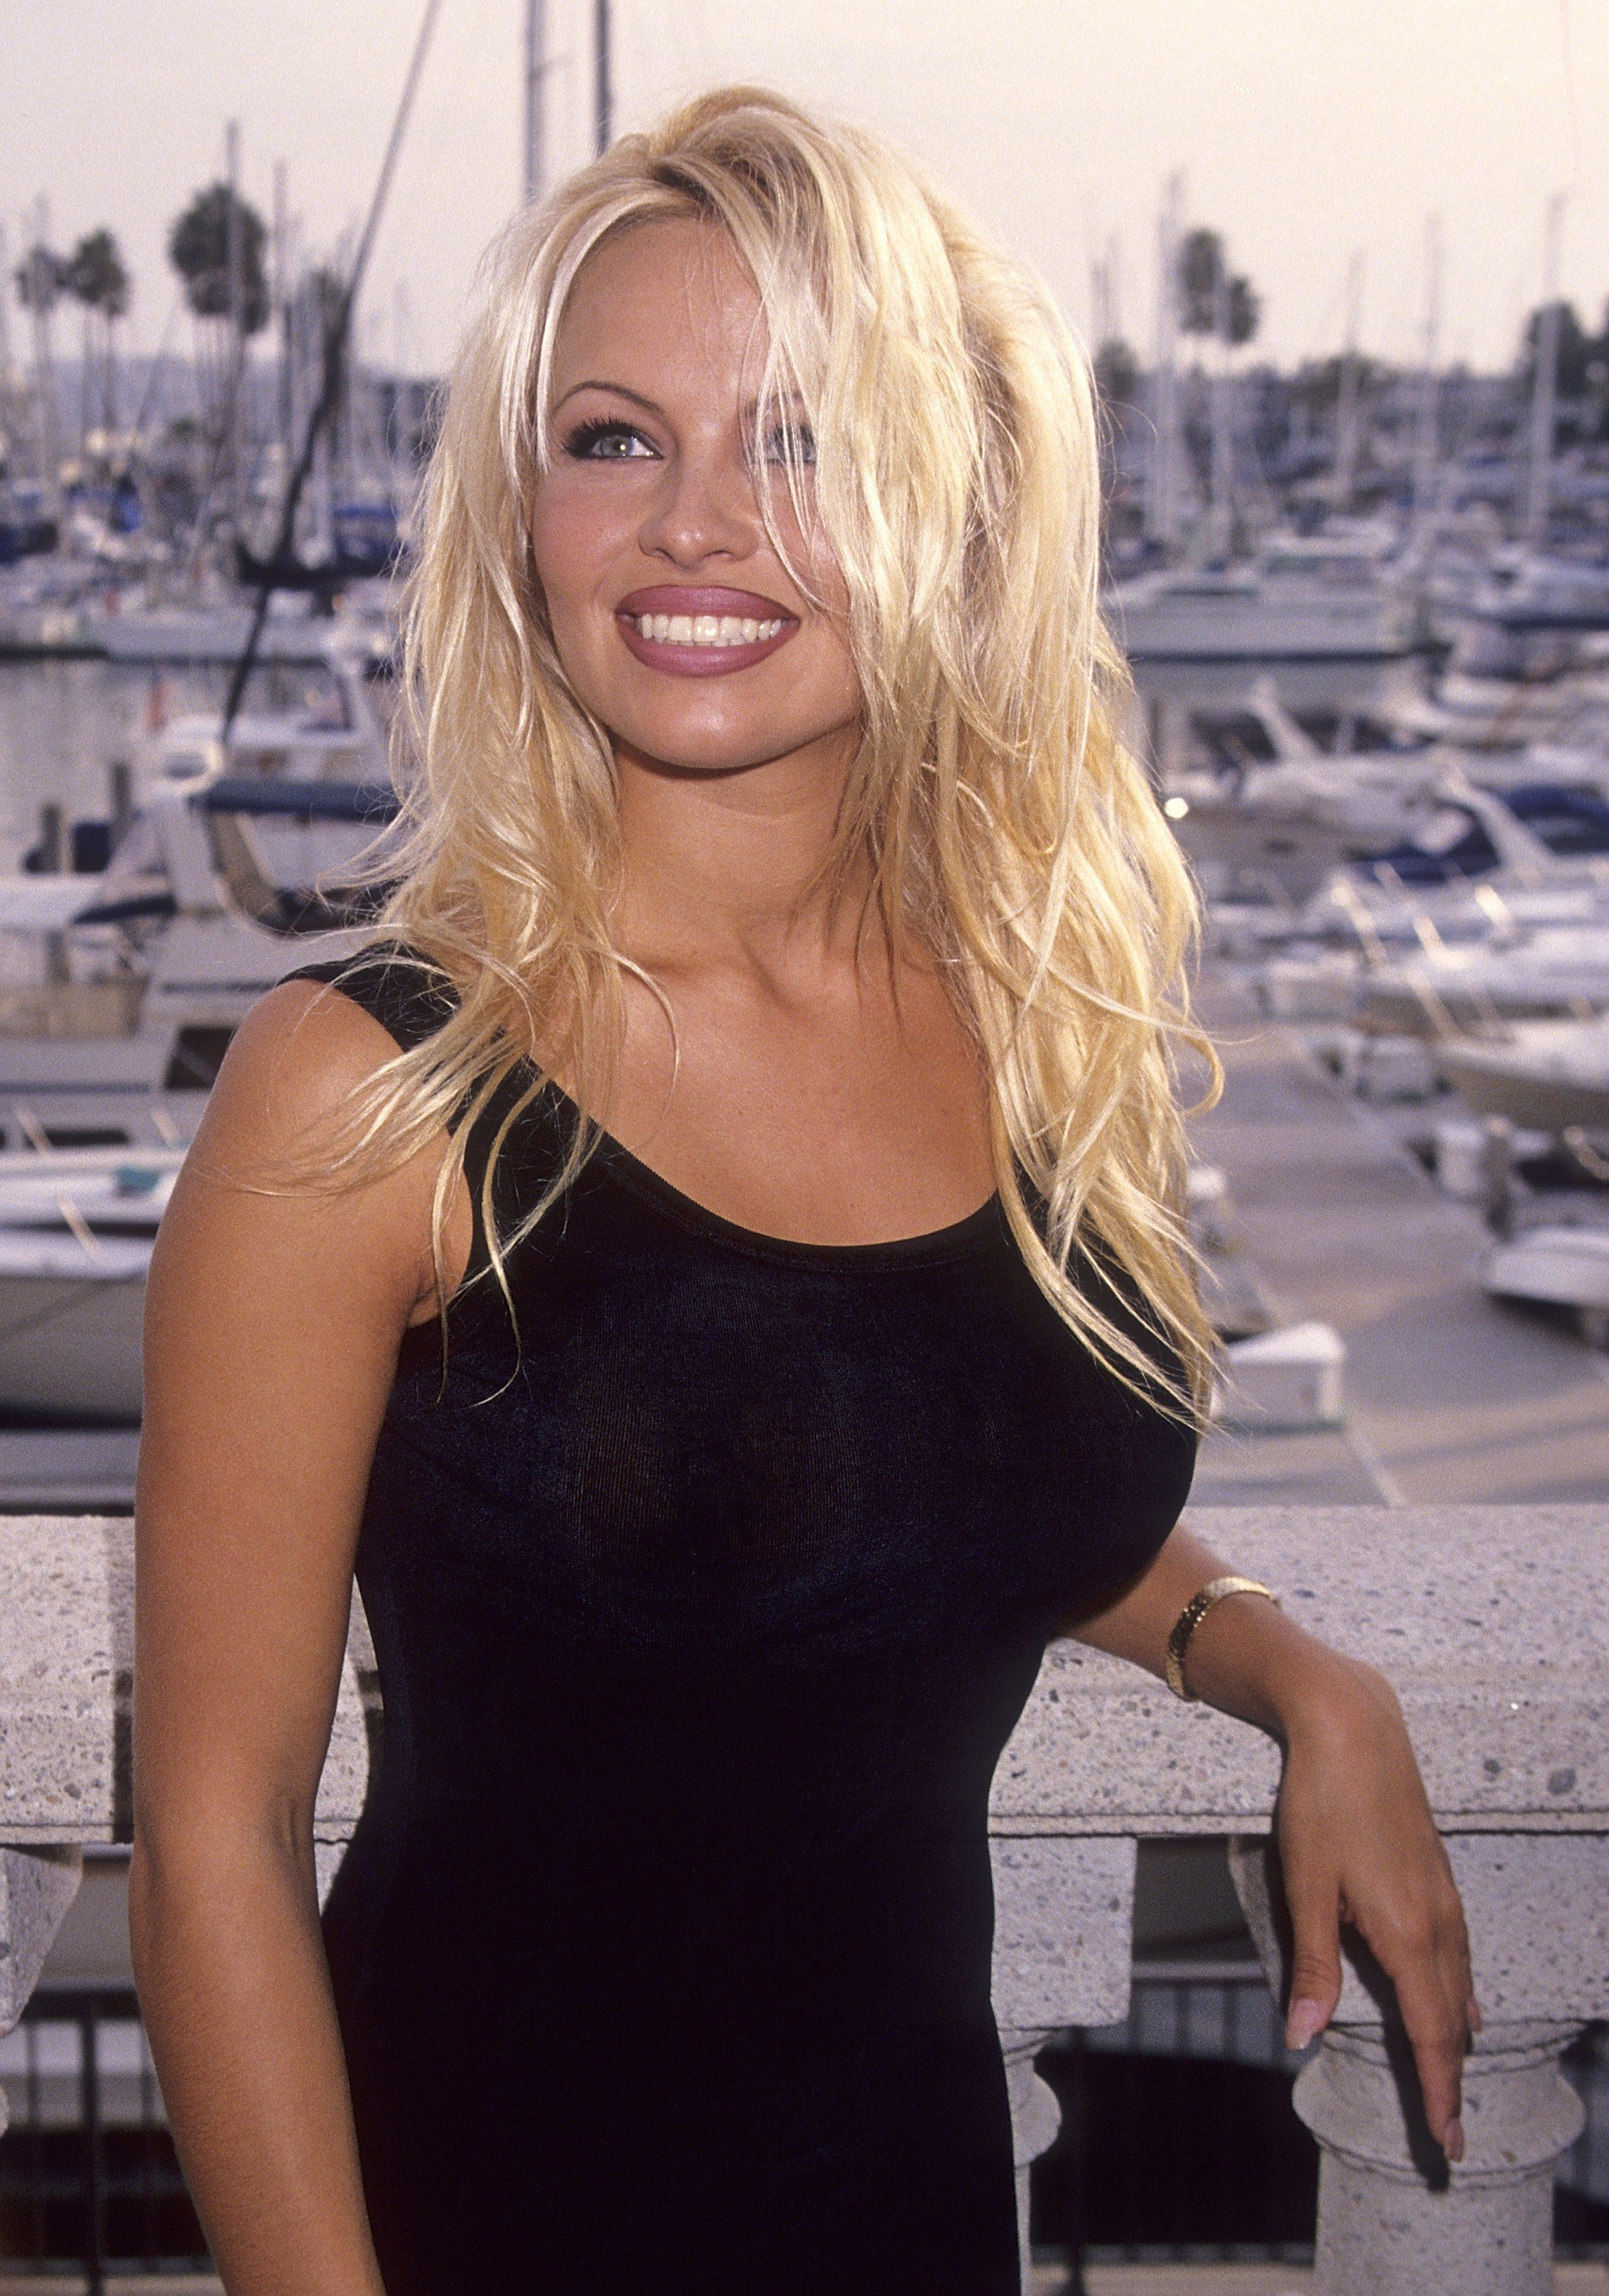 1994 40+ Photos Of Celebrities They Would Not Want You To See